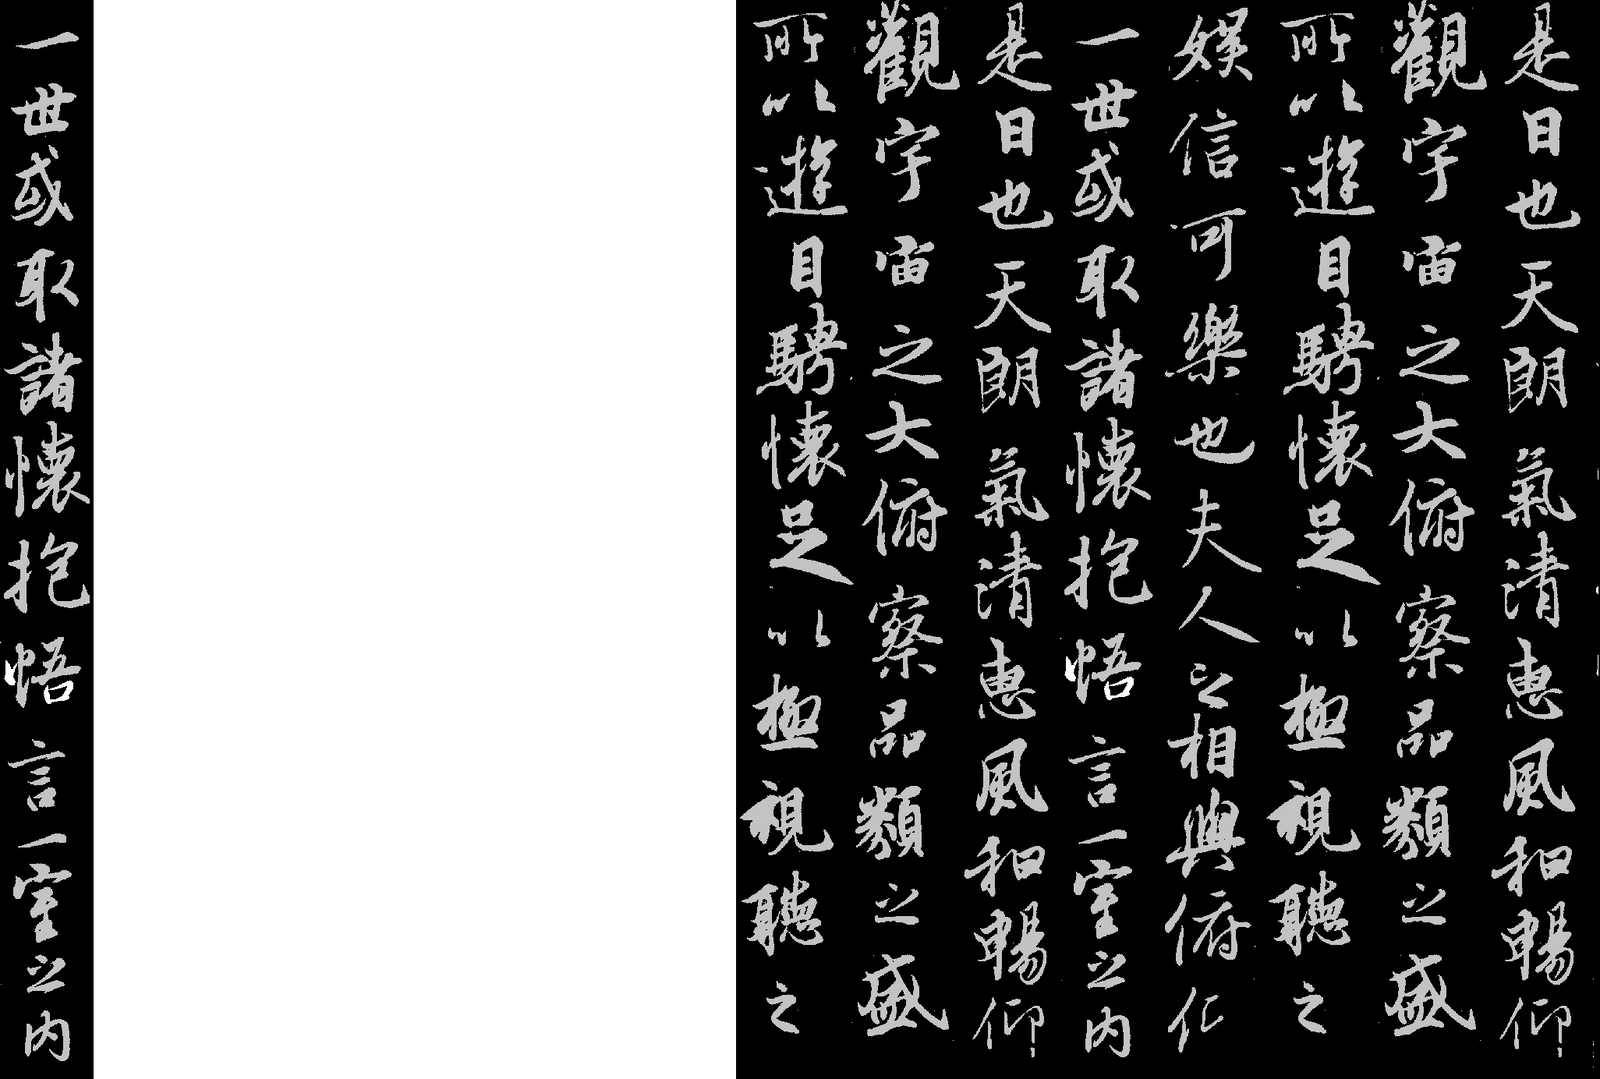 Chinese Calligraphy Background By Blackzet